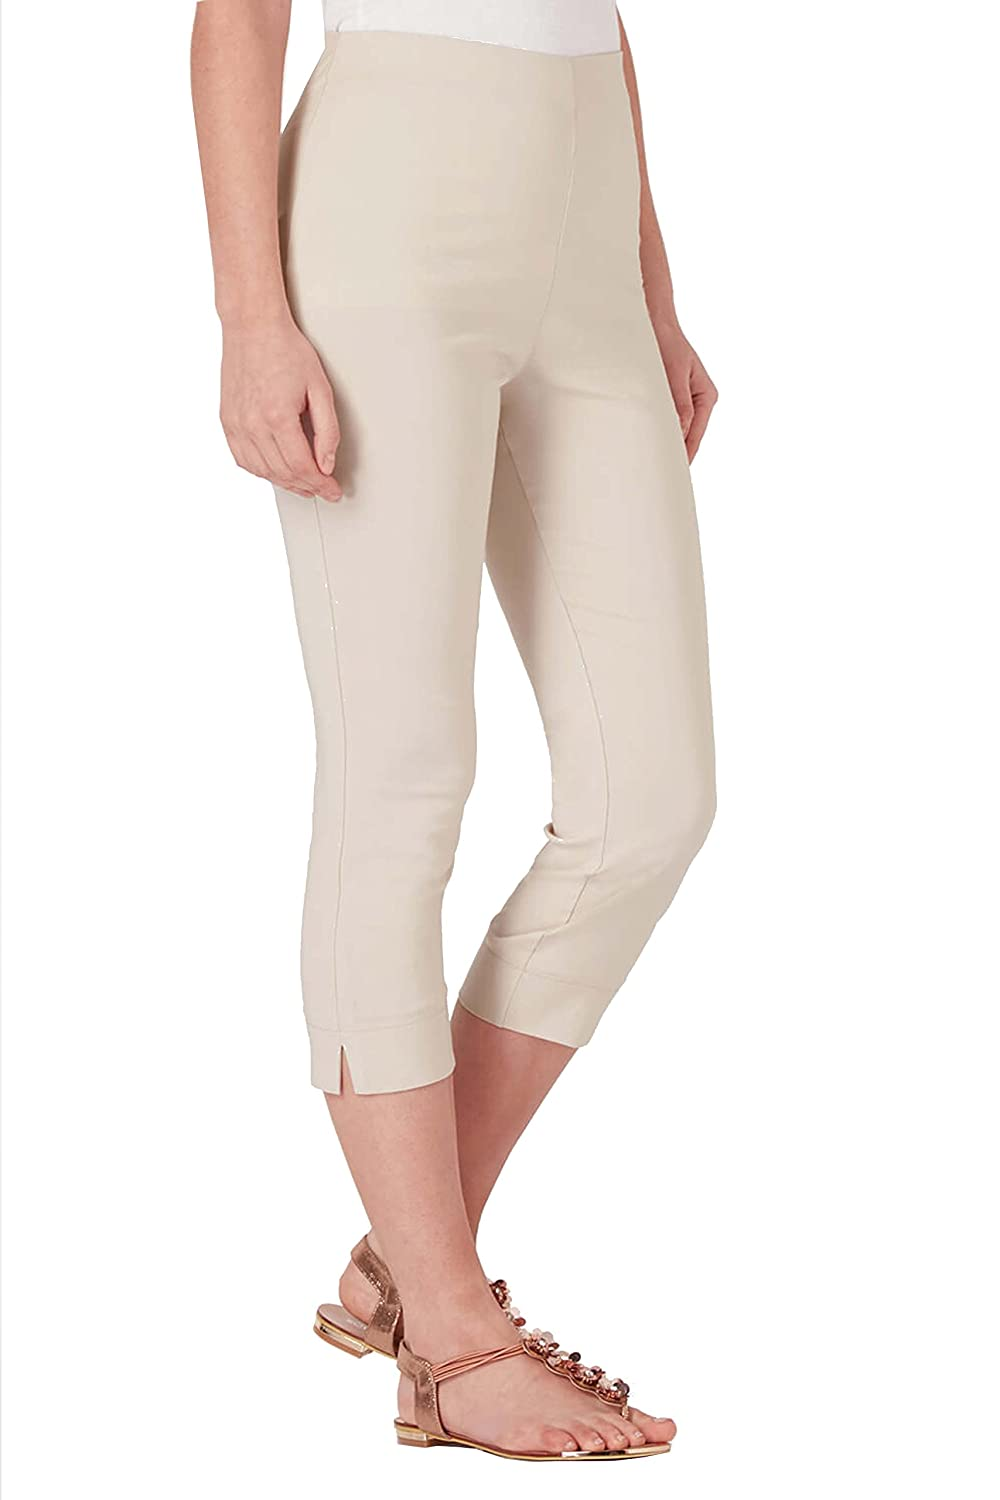 efde4c9e436 Roman Originals Women Cropped Stretch Bengaline Trousers - Ladies ...